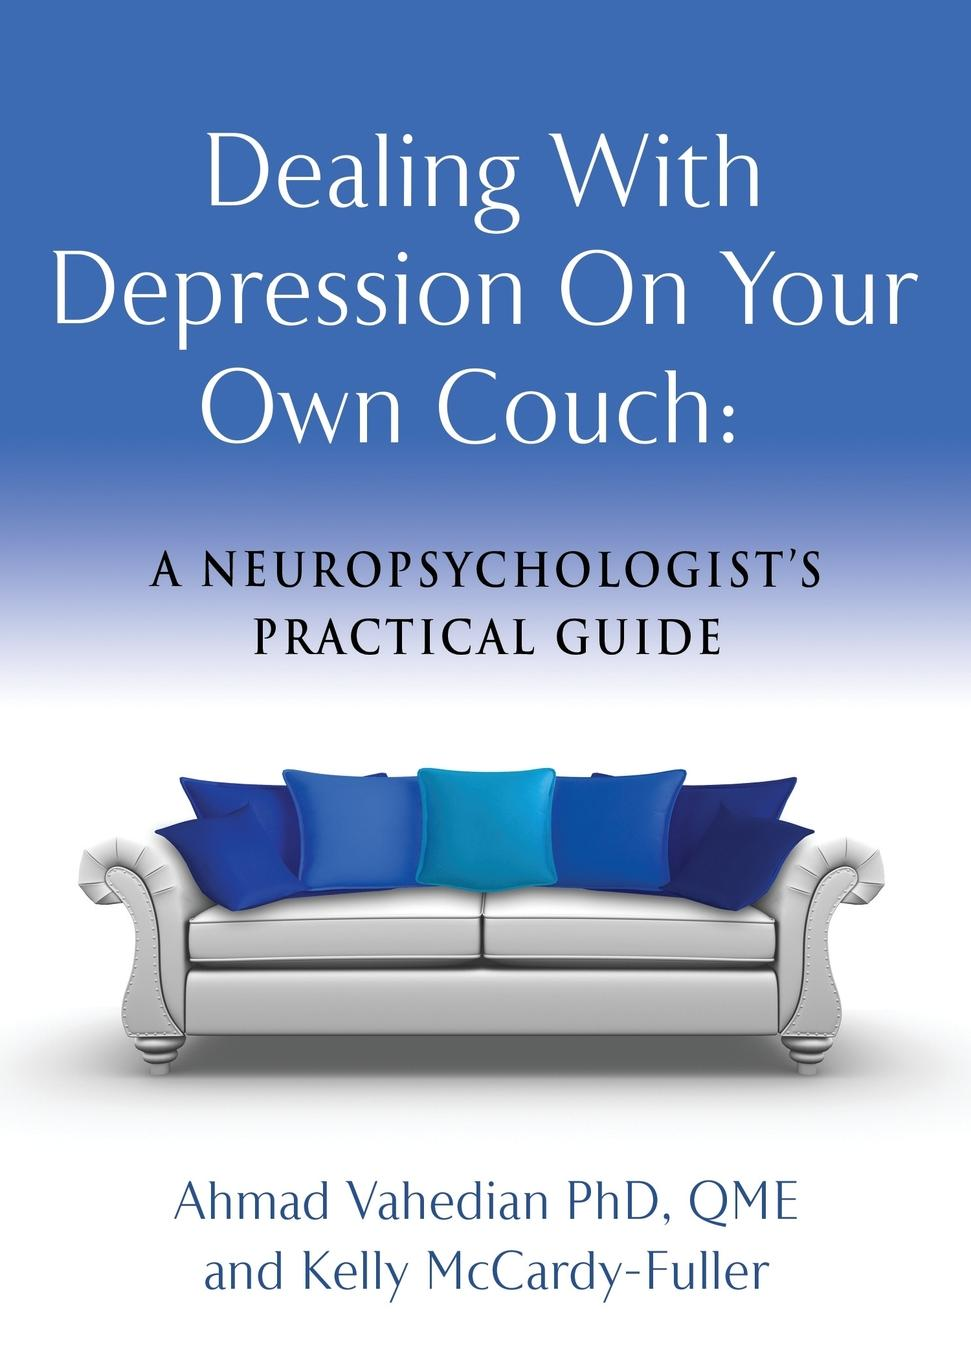 Ahmad Vahedian PhD QME, Kelly McCardy-Fuller Dealing with Depression On Your Own Couch. A Neuropsychologist.s Practical Guide barrow tzs1 a02 yklzs1 t01 g1 4 white black silver gold acrylic water cooling plug coins can be used to twist the